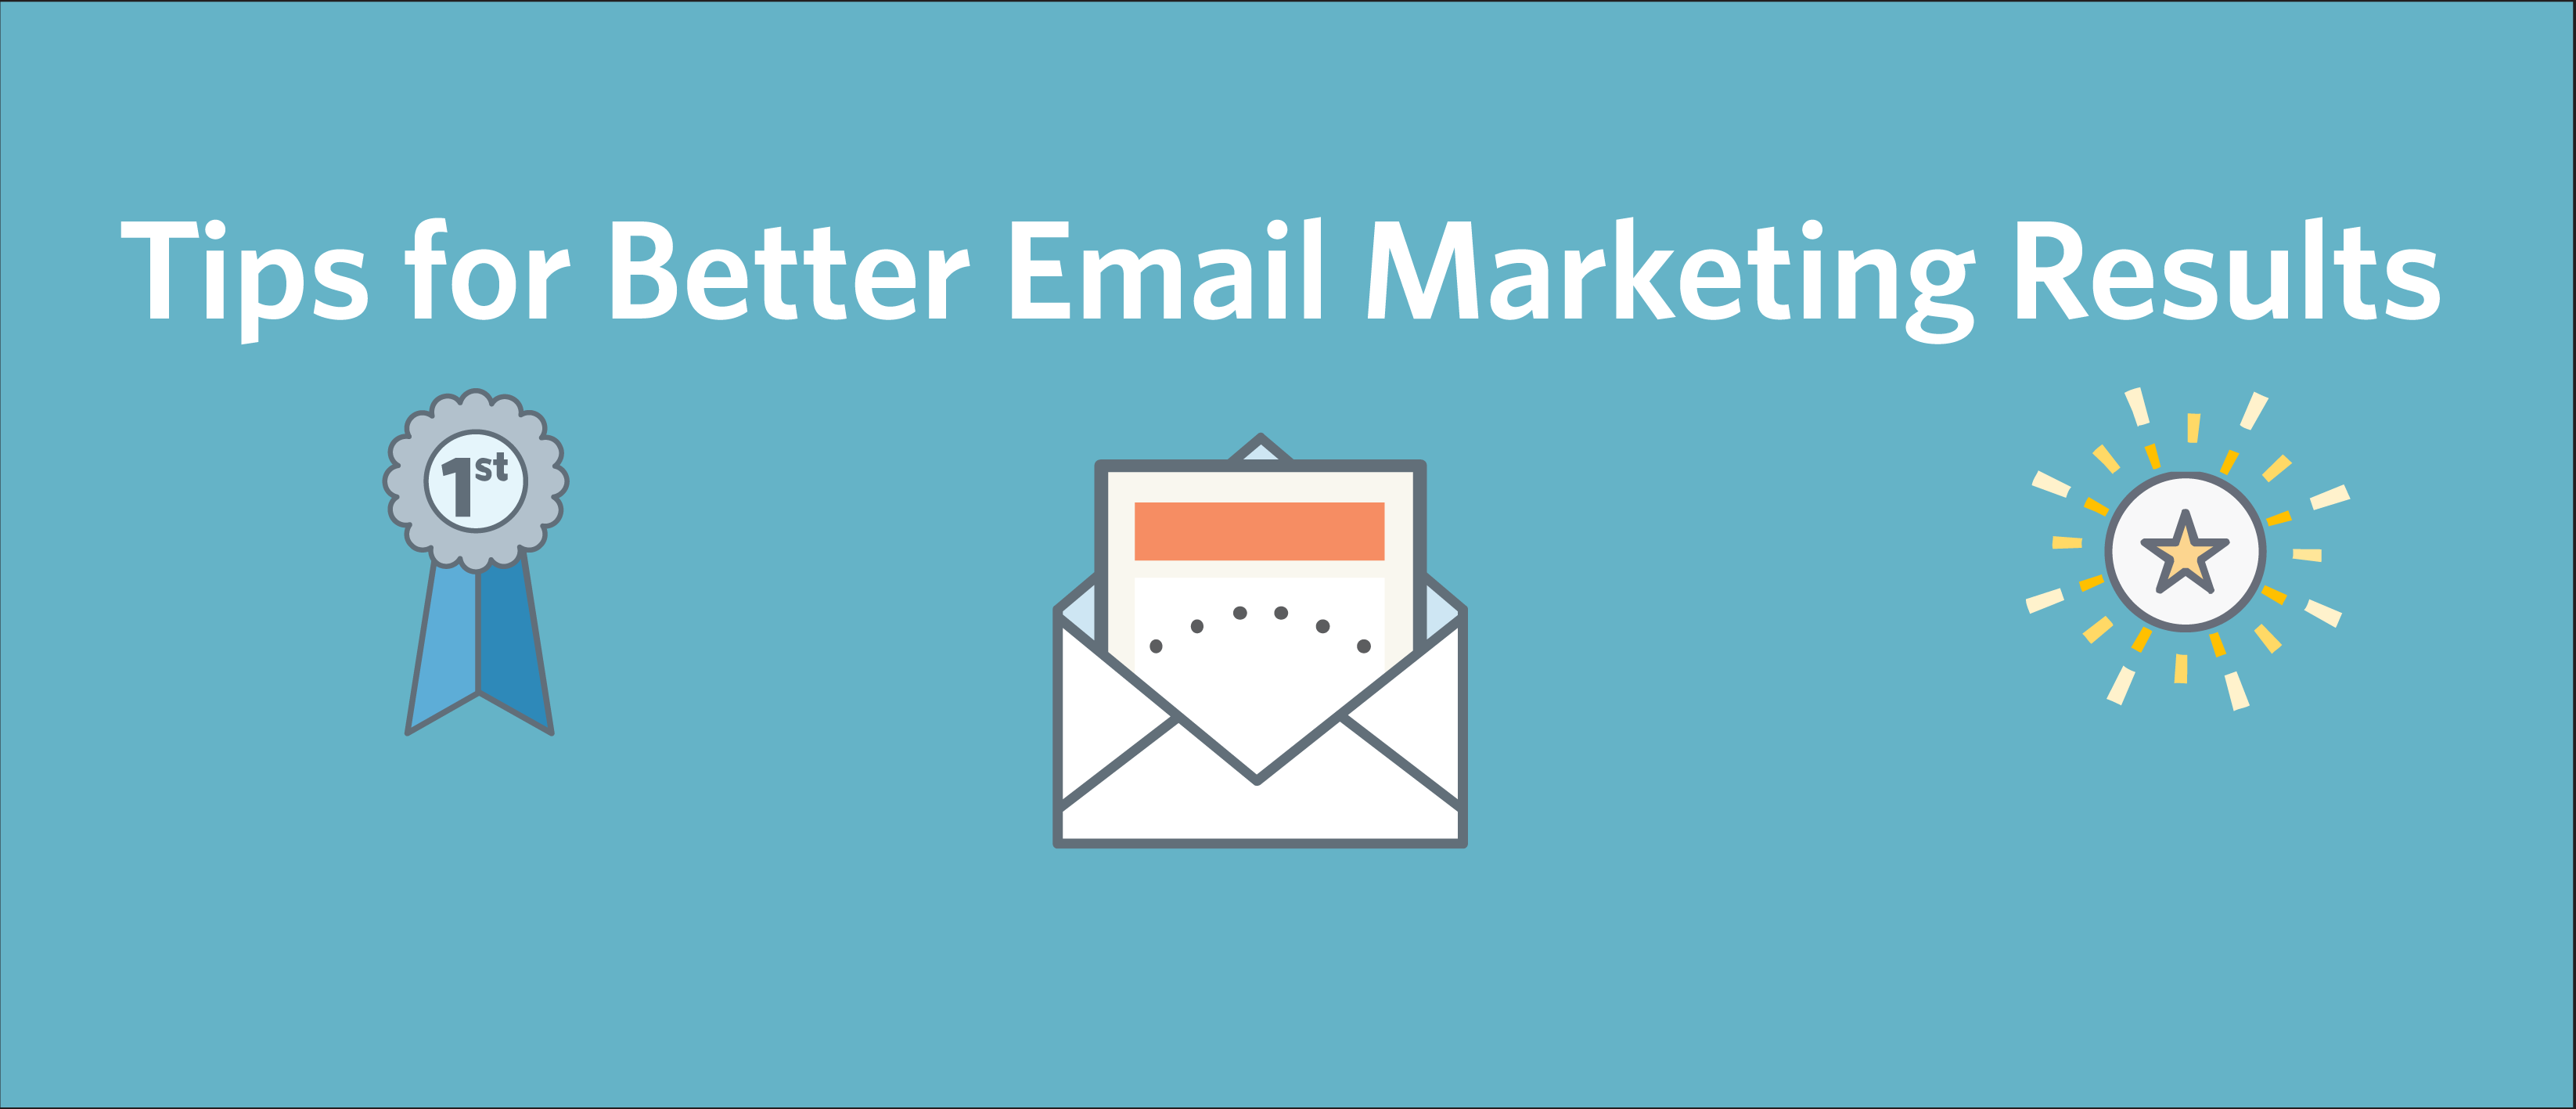 Tips for Better Email Marketing Results | Constant Contact Blogs